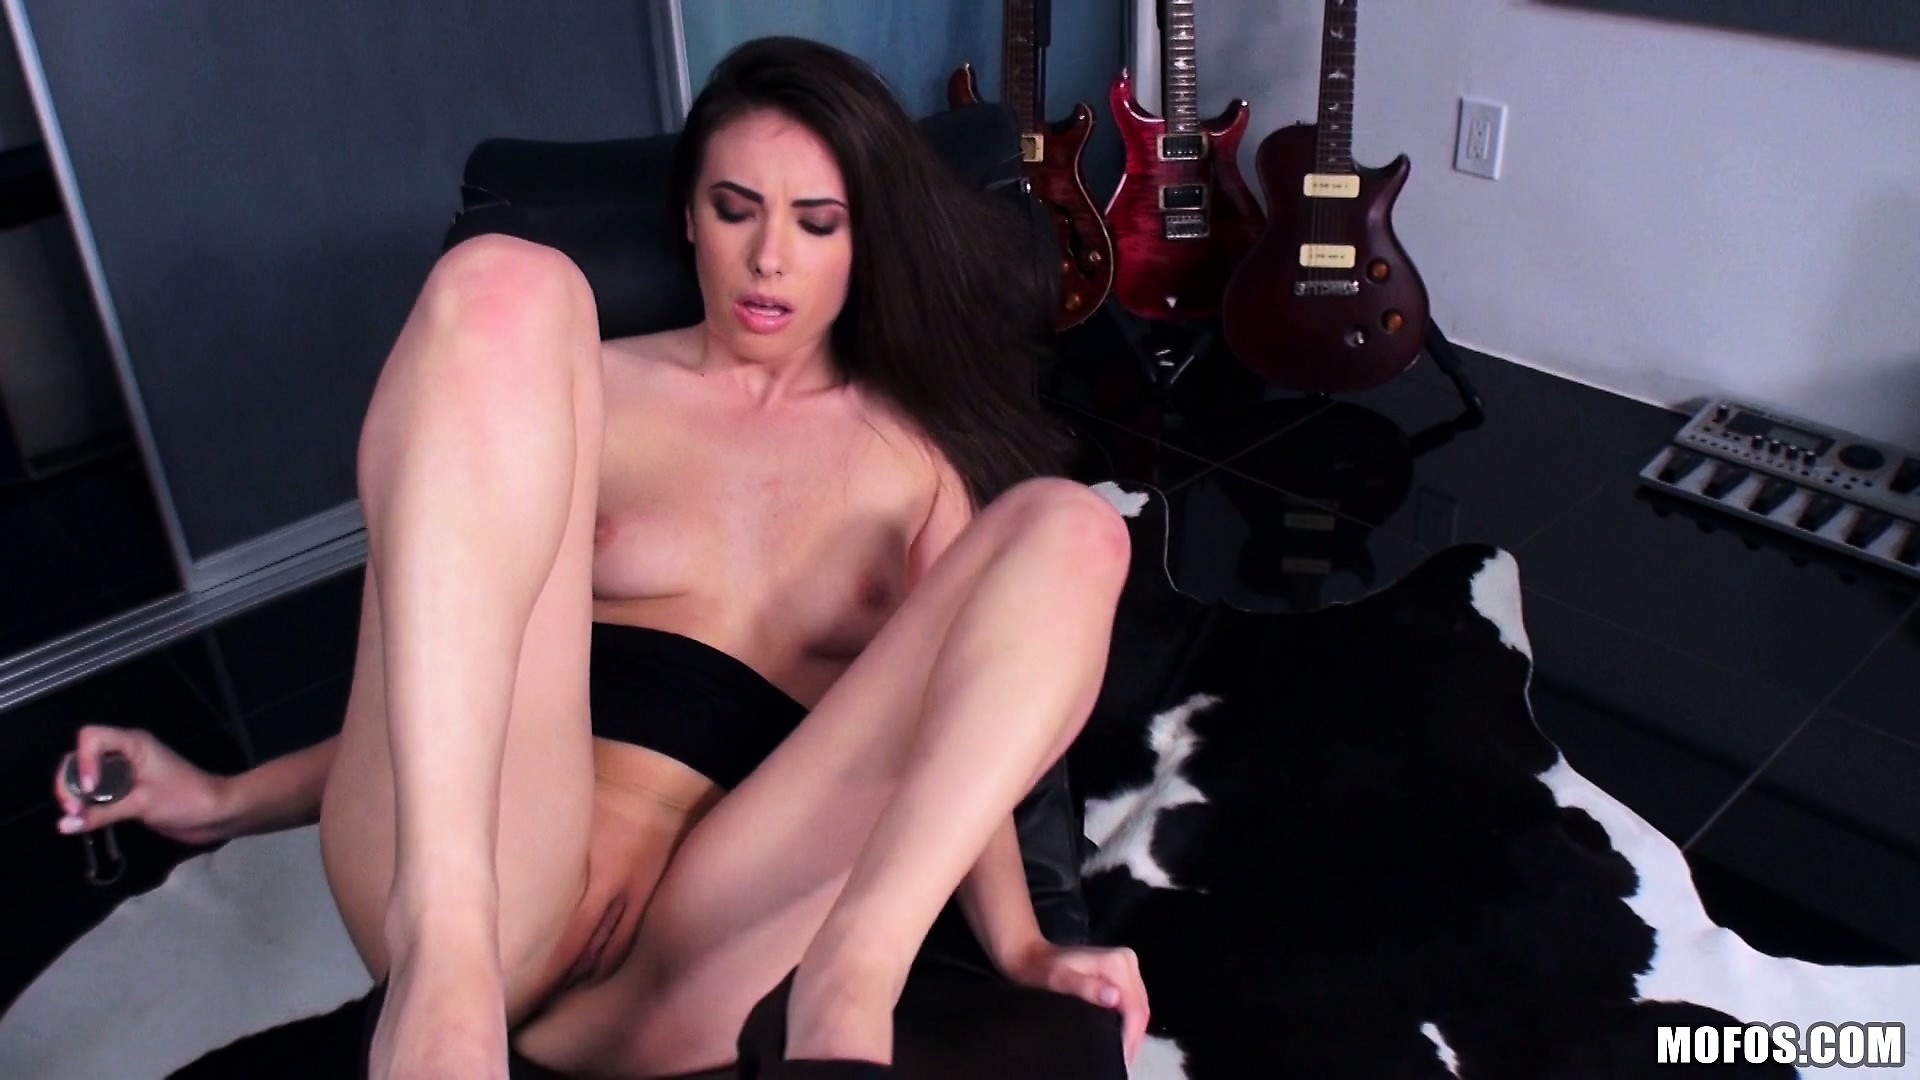 Porn Tube of Babe With Gigantic Rump Goes Sticking Metal Toys Into Her Anus